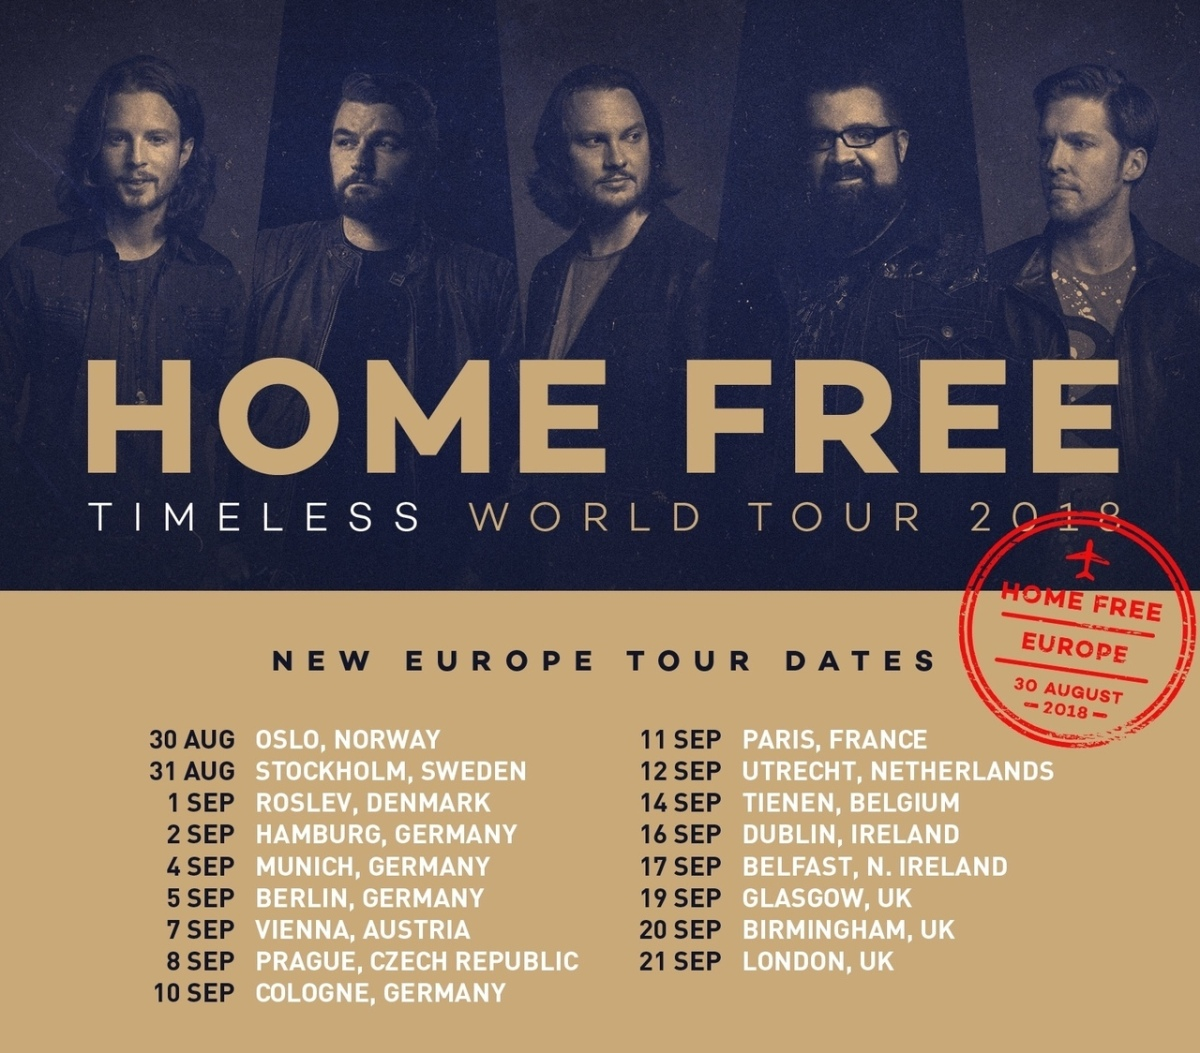 Home Free Announces Europe Tour Dates